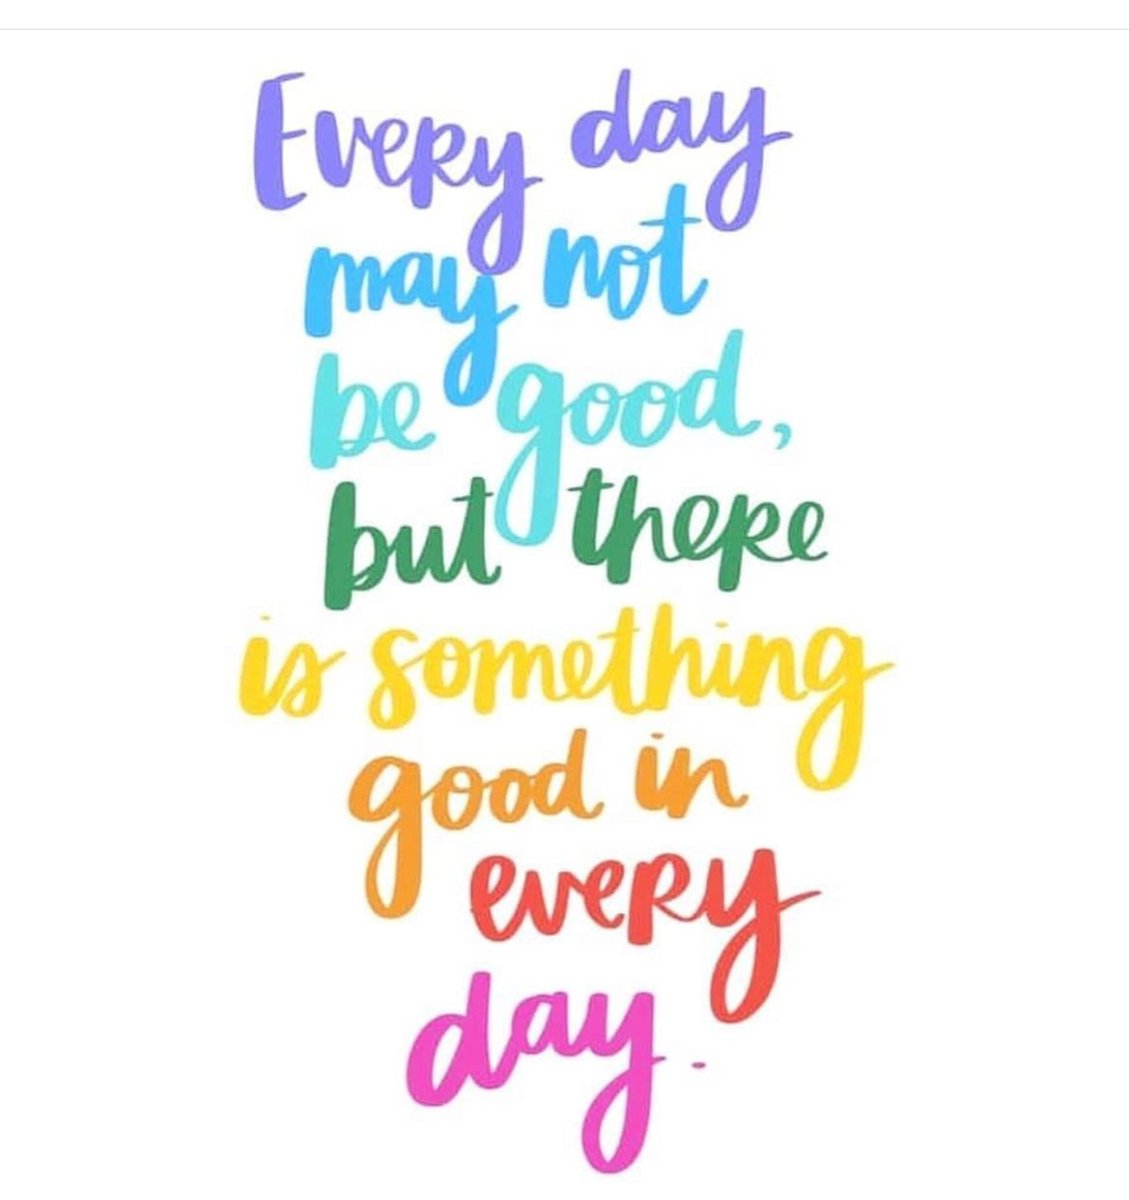 Something to remember. 😊 Every day may not be good, but there is something good in every day.